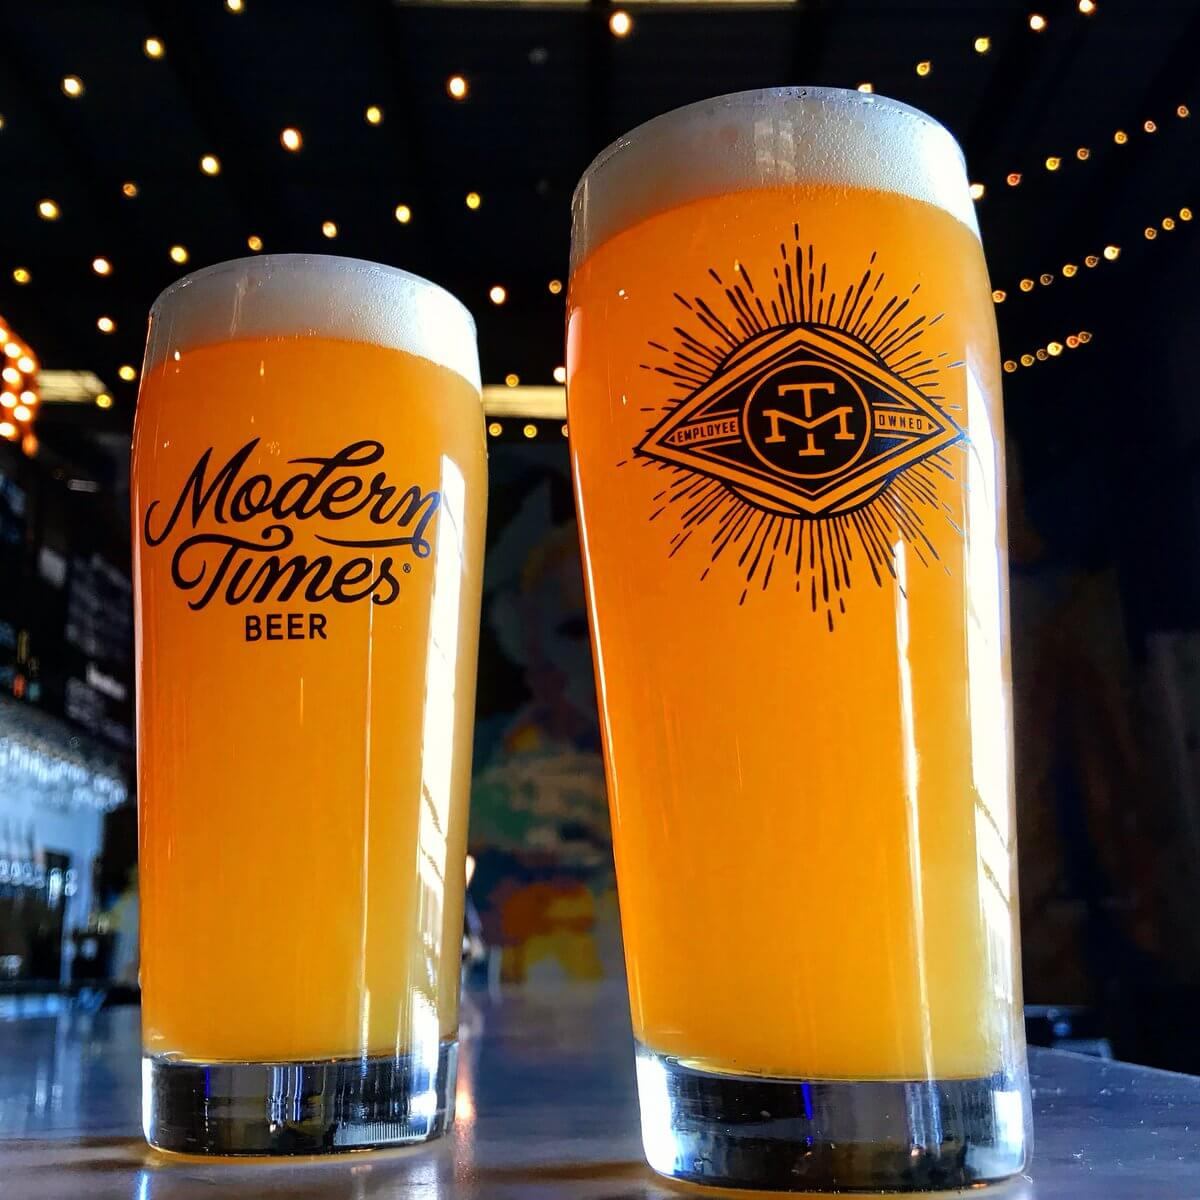 Modern Times Beer is reopening four locations but with certain state health restrictions for guests.